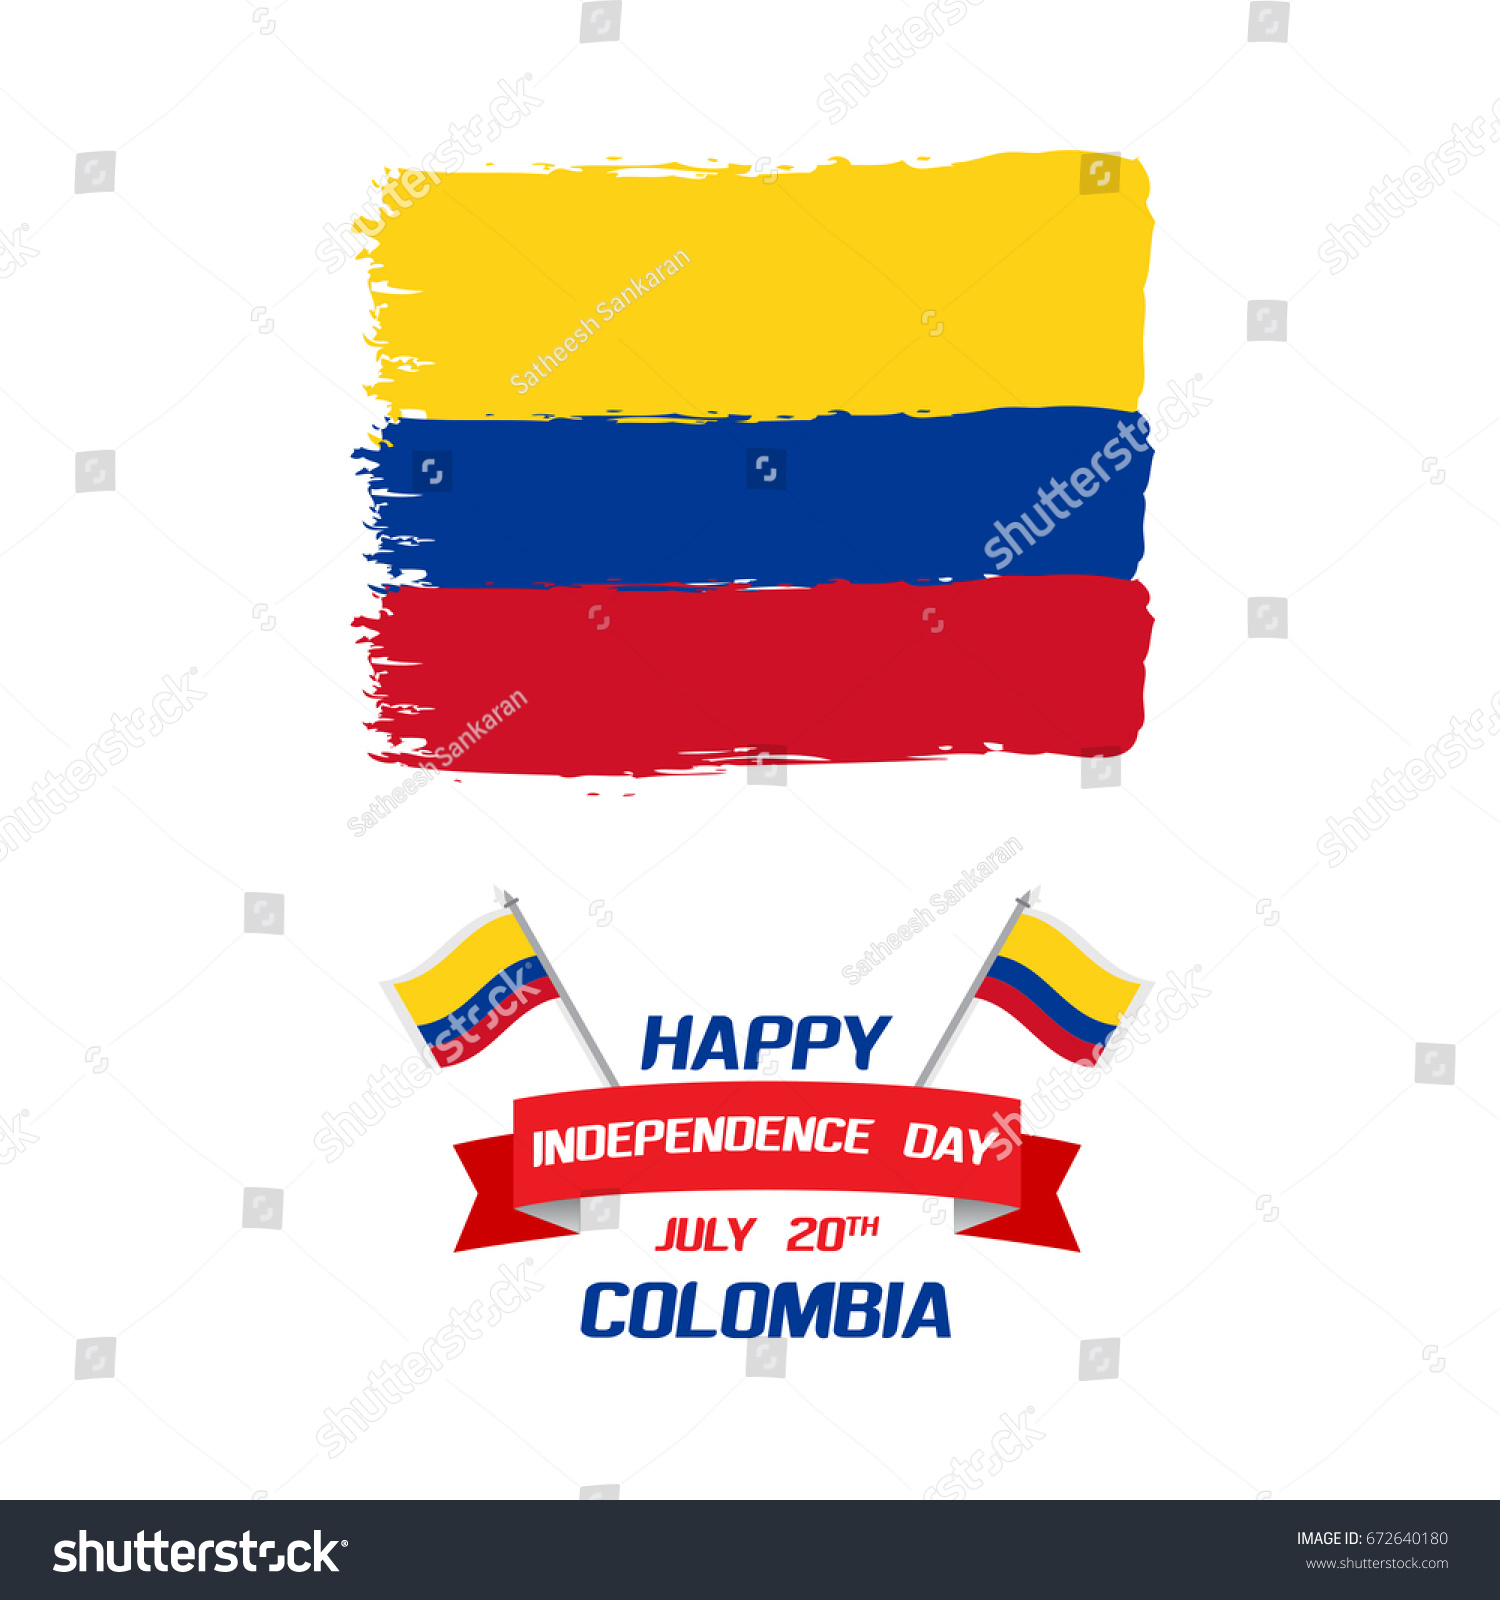 Colombian Independence Day Greetings Vector Illustration Stock